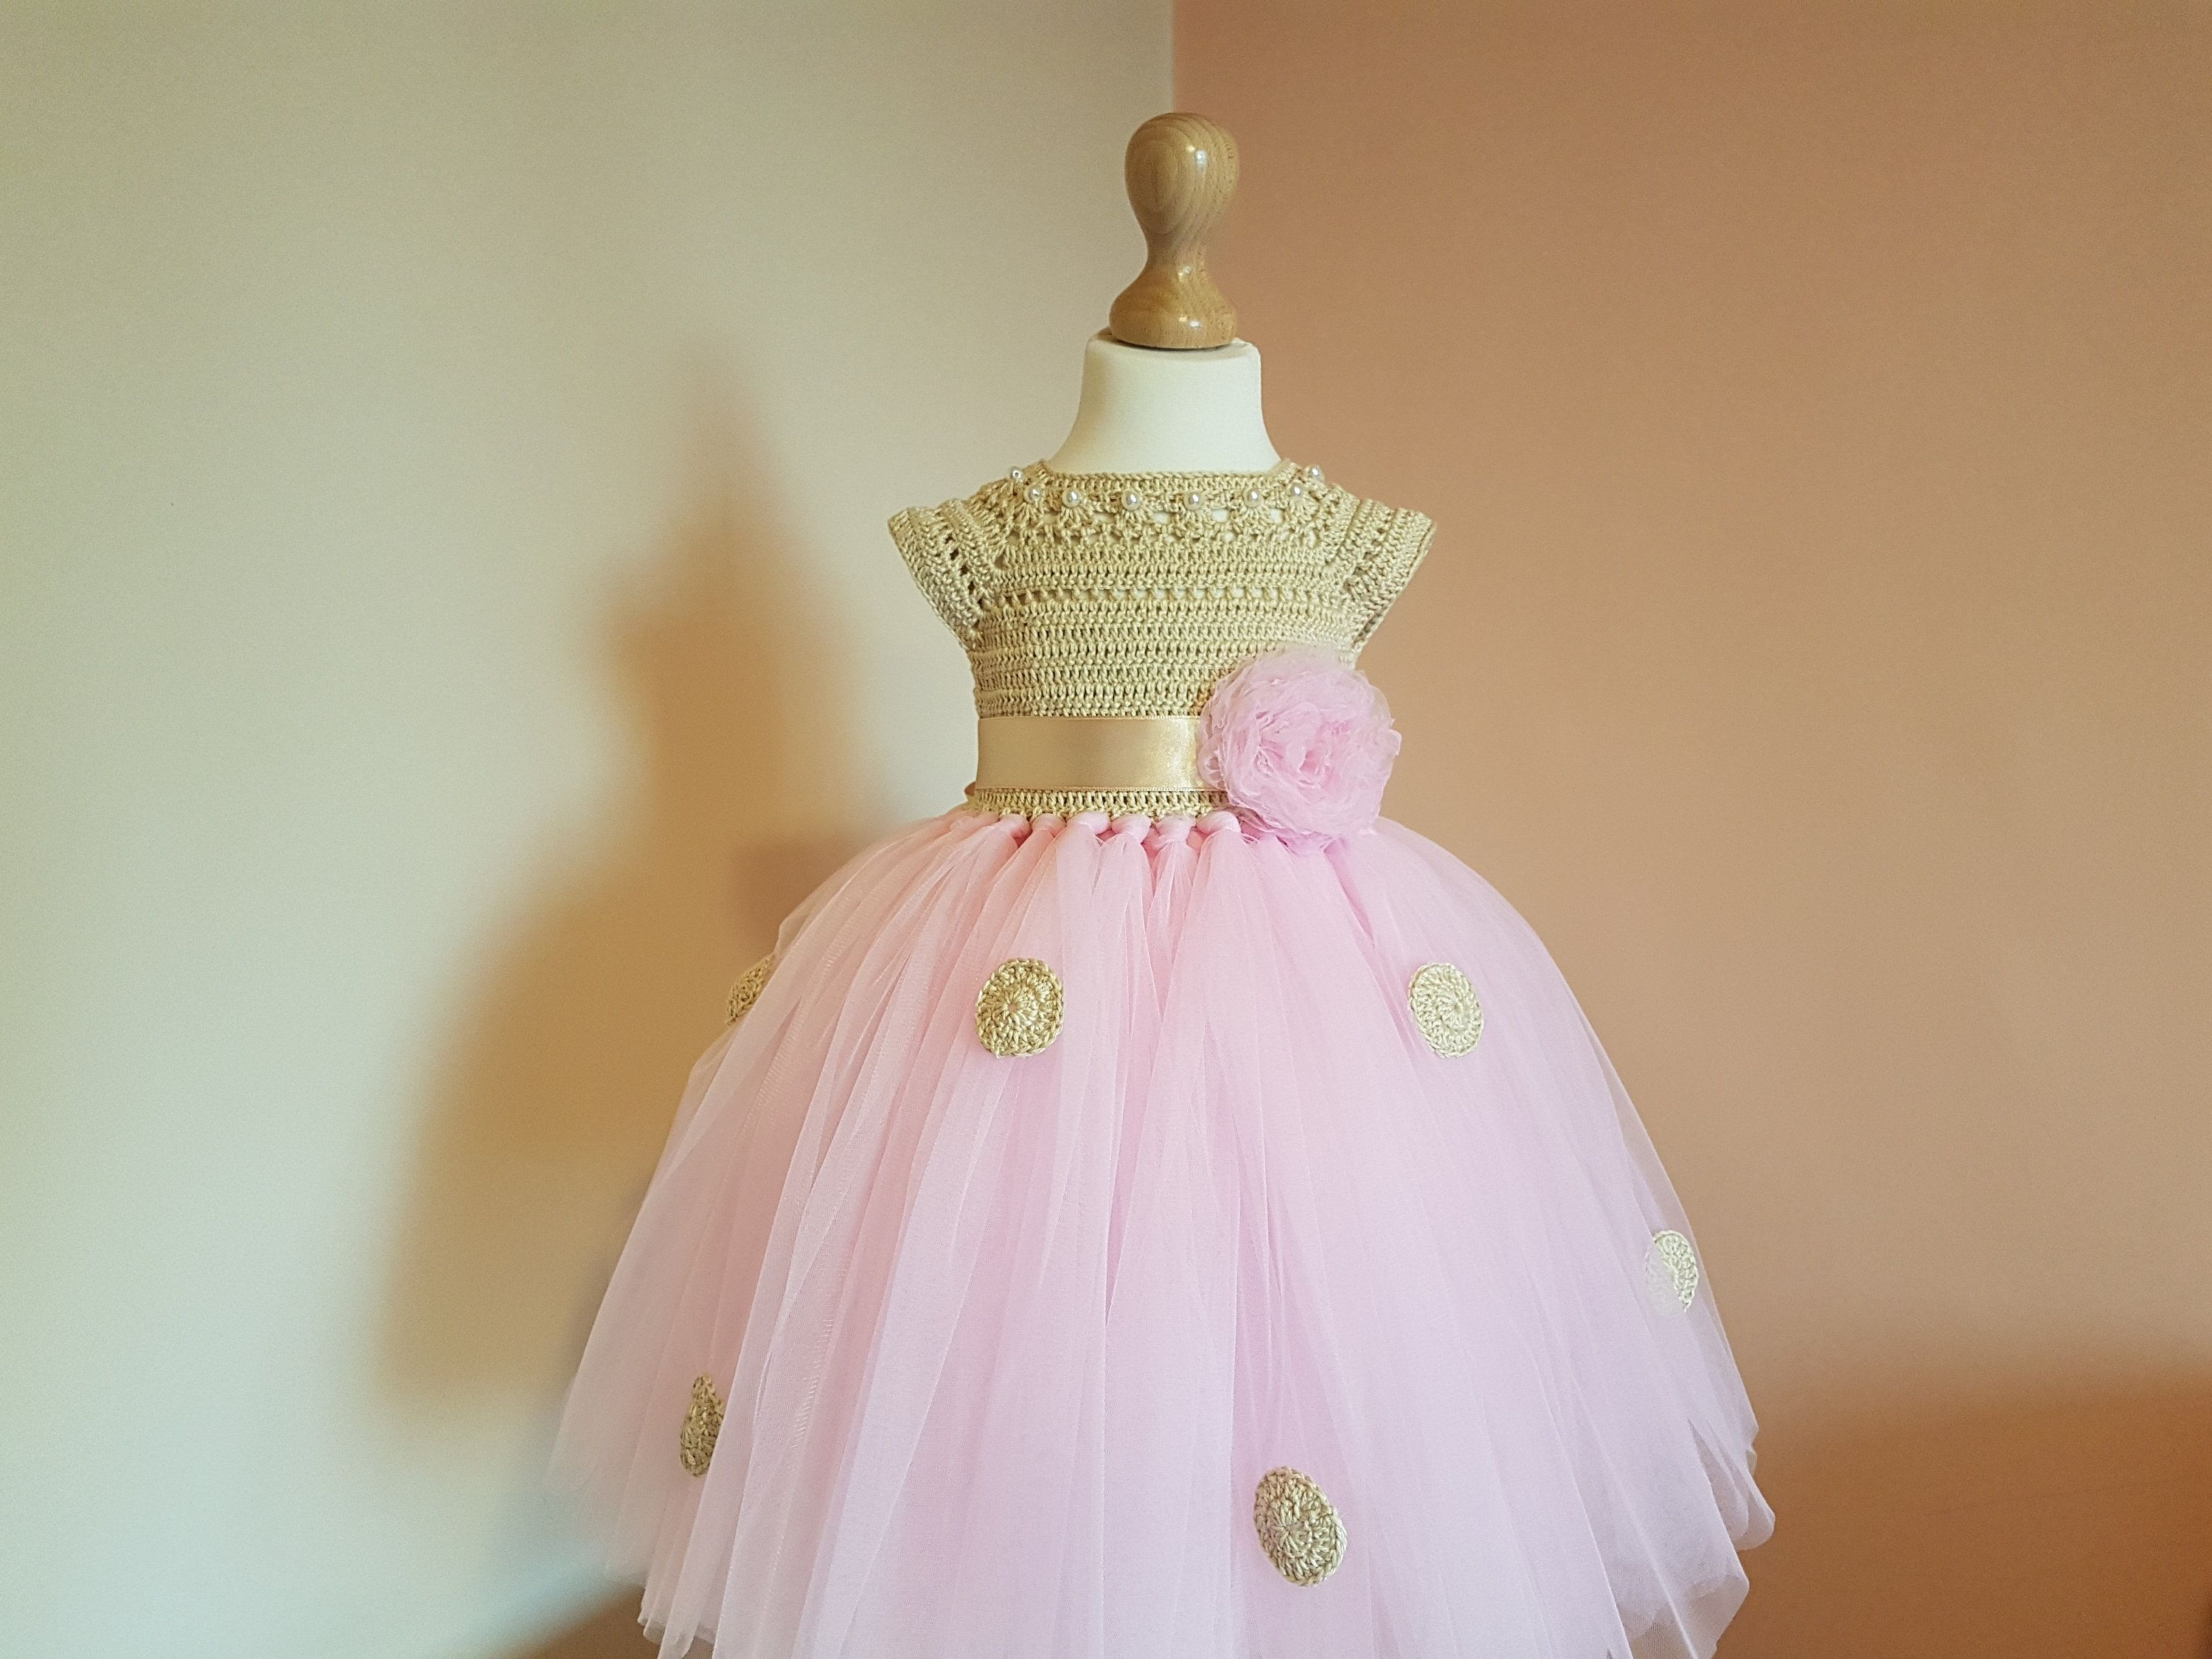 Pink and gold dress for kids  MINNIE MOUSE tutu dress pink and gold tutu dress crochet dress